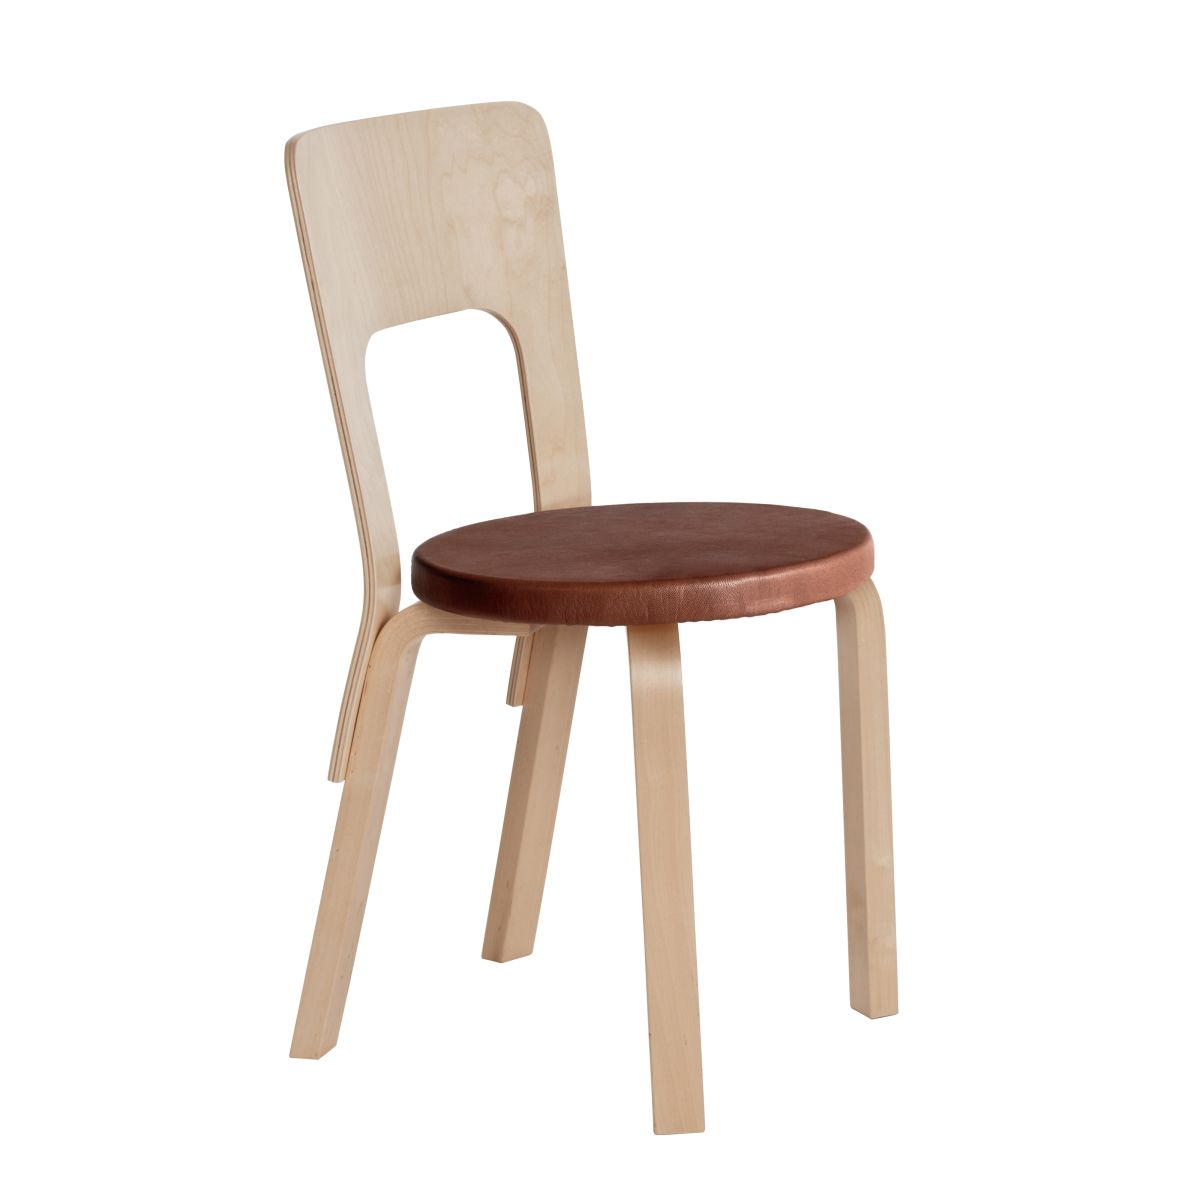 Chair 66 Legs Birch Top Leather Upholstery 2463564